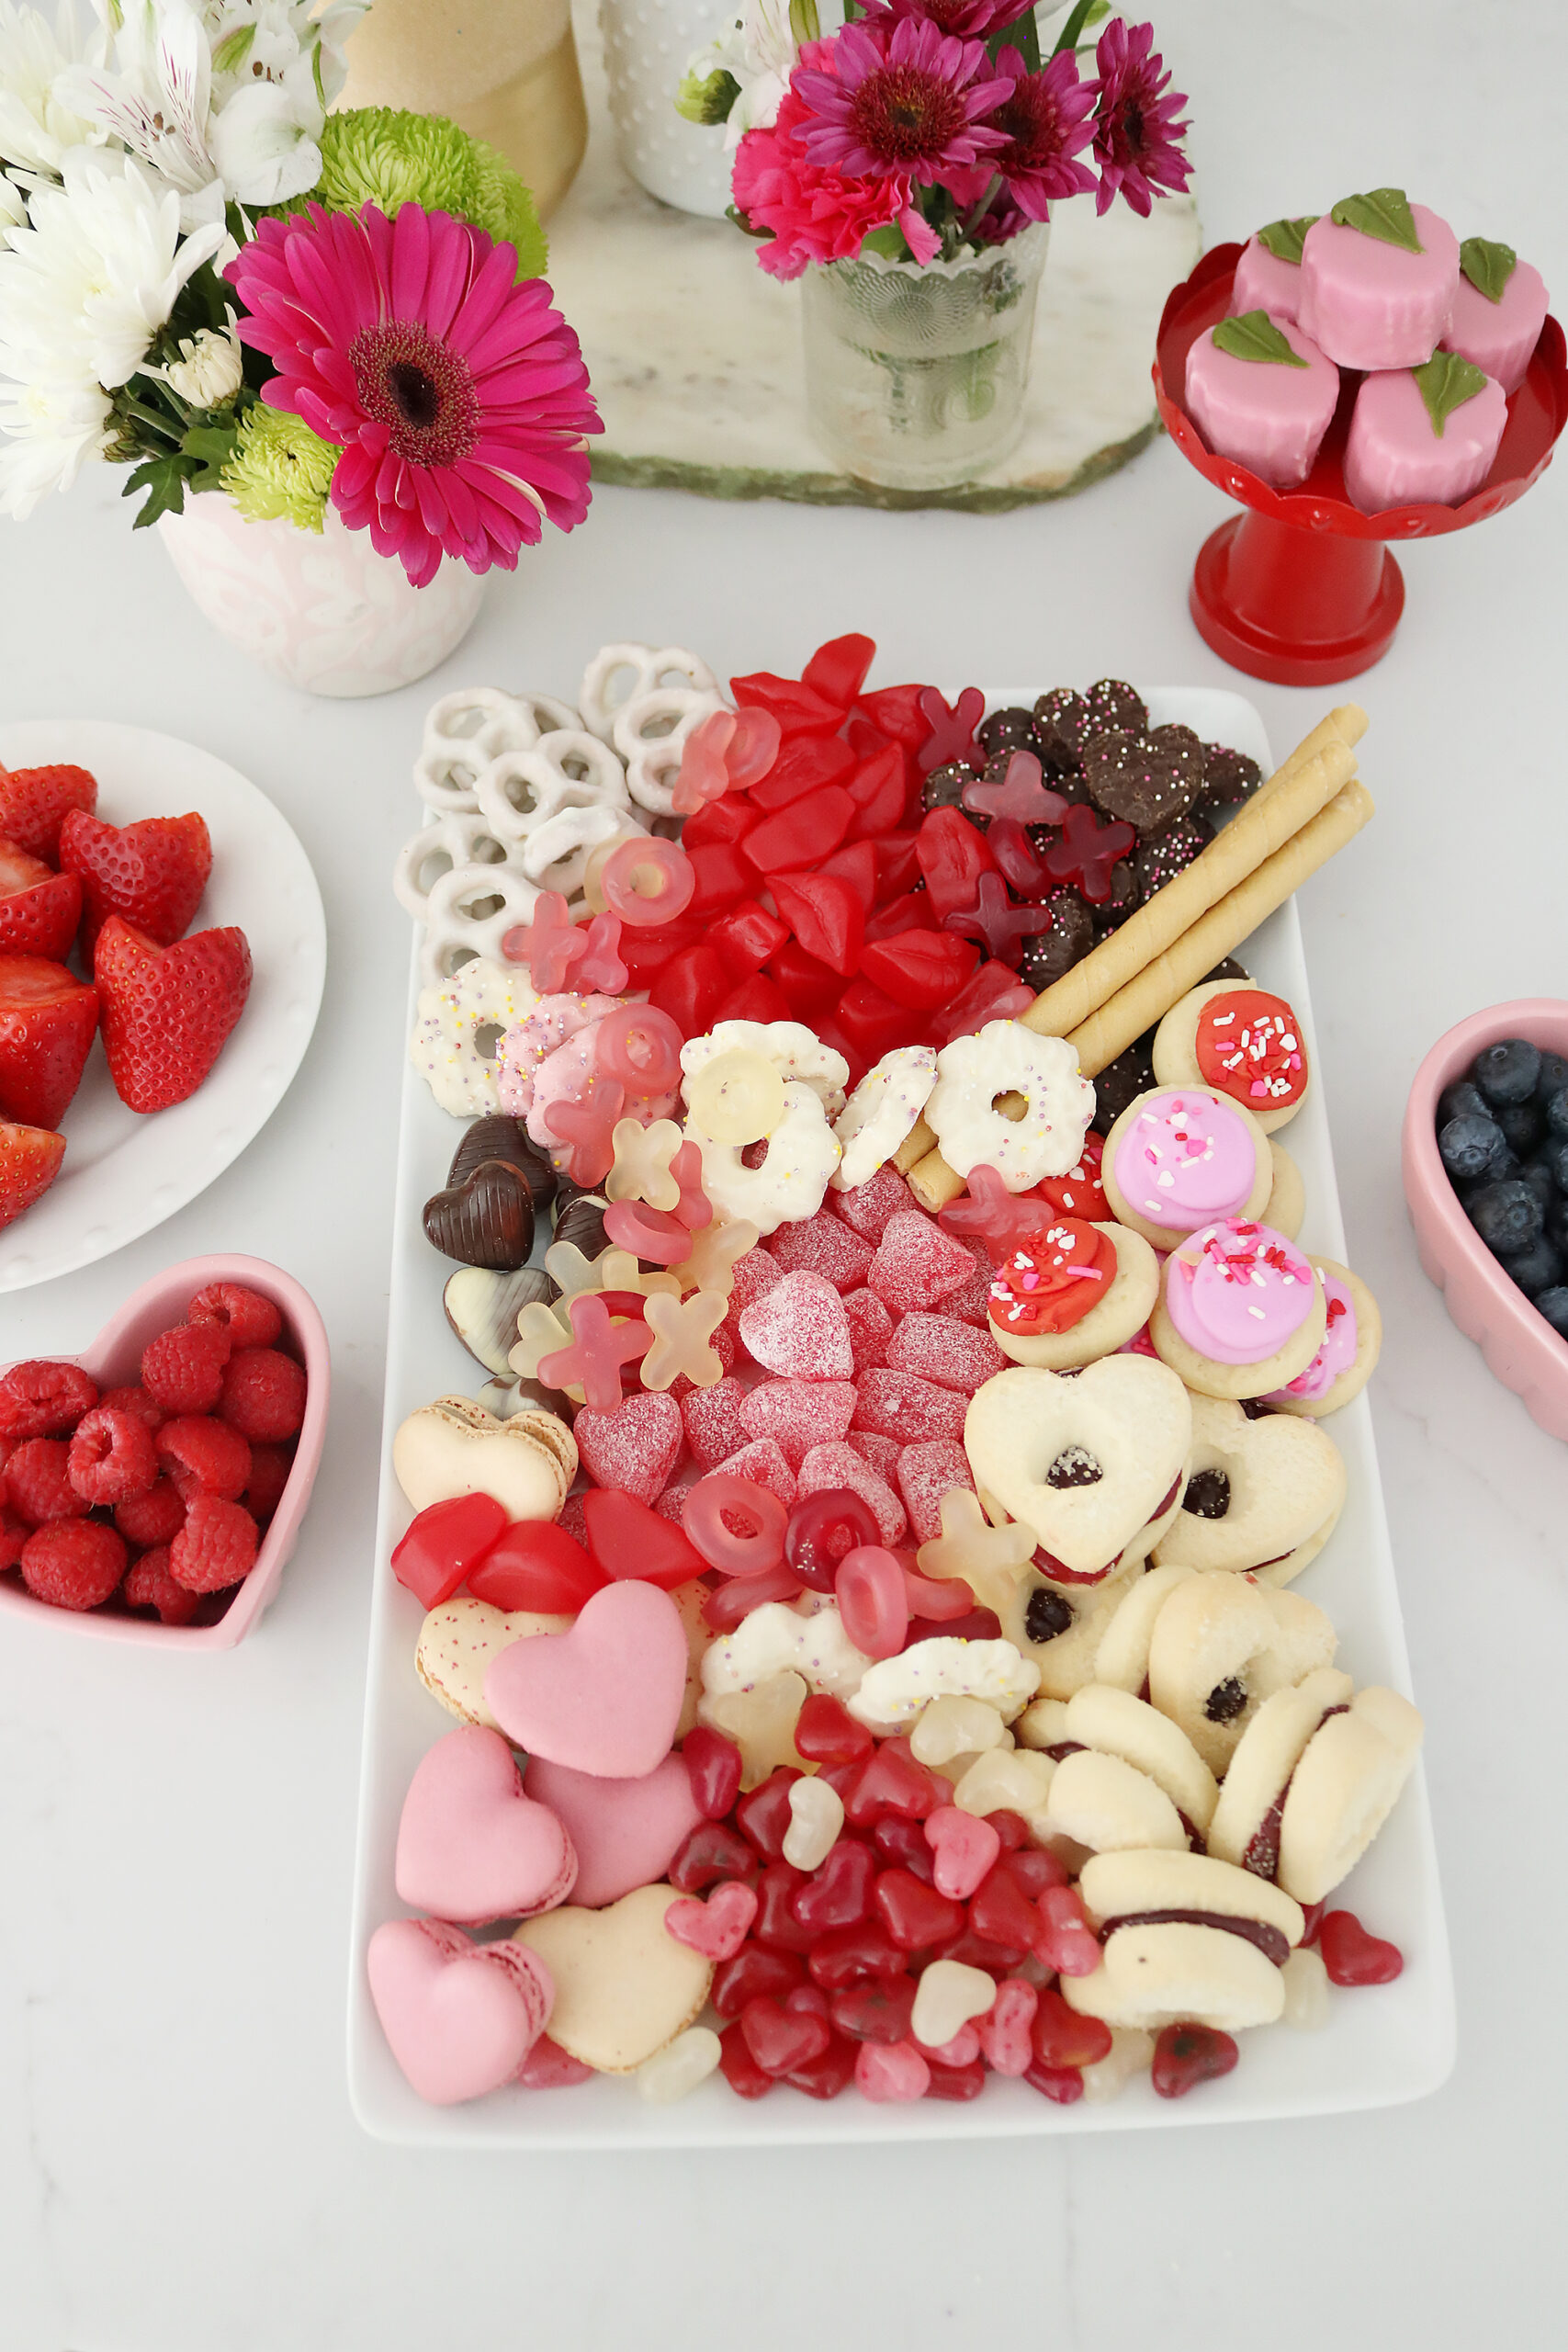 Bring Valentine's Day Home this year!  Put together a Valentine's charcuterie board with heart shaped chocolate, cinnamon lips and macrons!  So many fun Valentine's Day ideas to share with your family    Darling Darleen Top Lifestyle Blogger #ctblogger #darlingdarleen #valentinesday